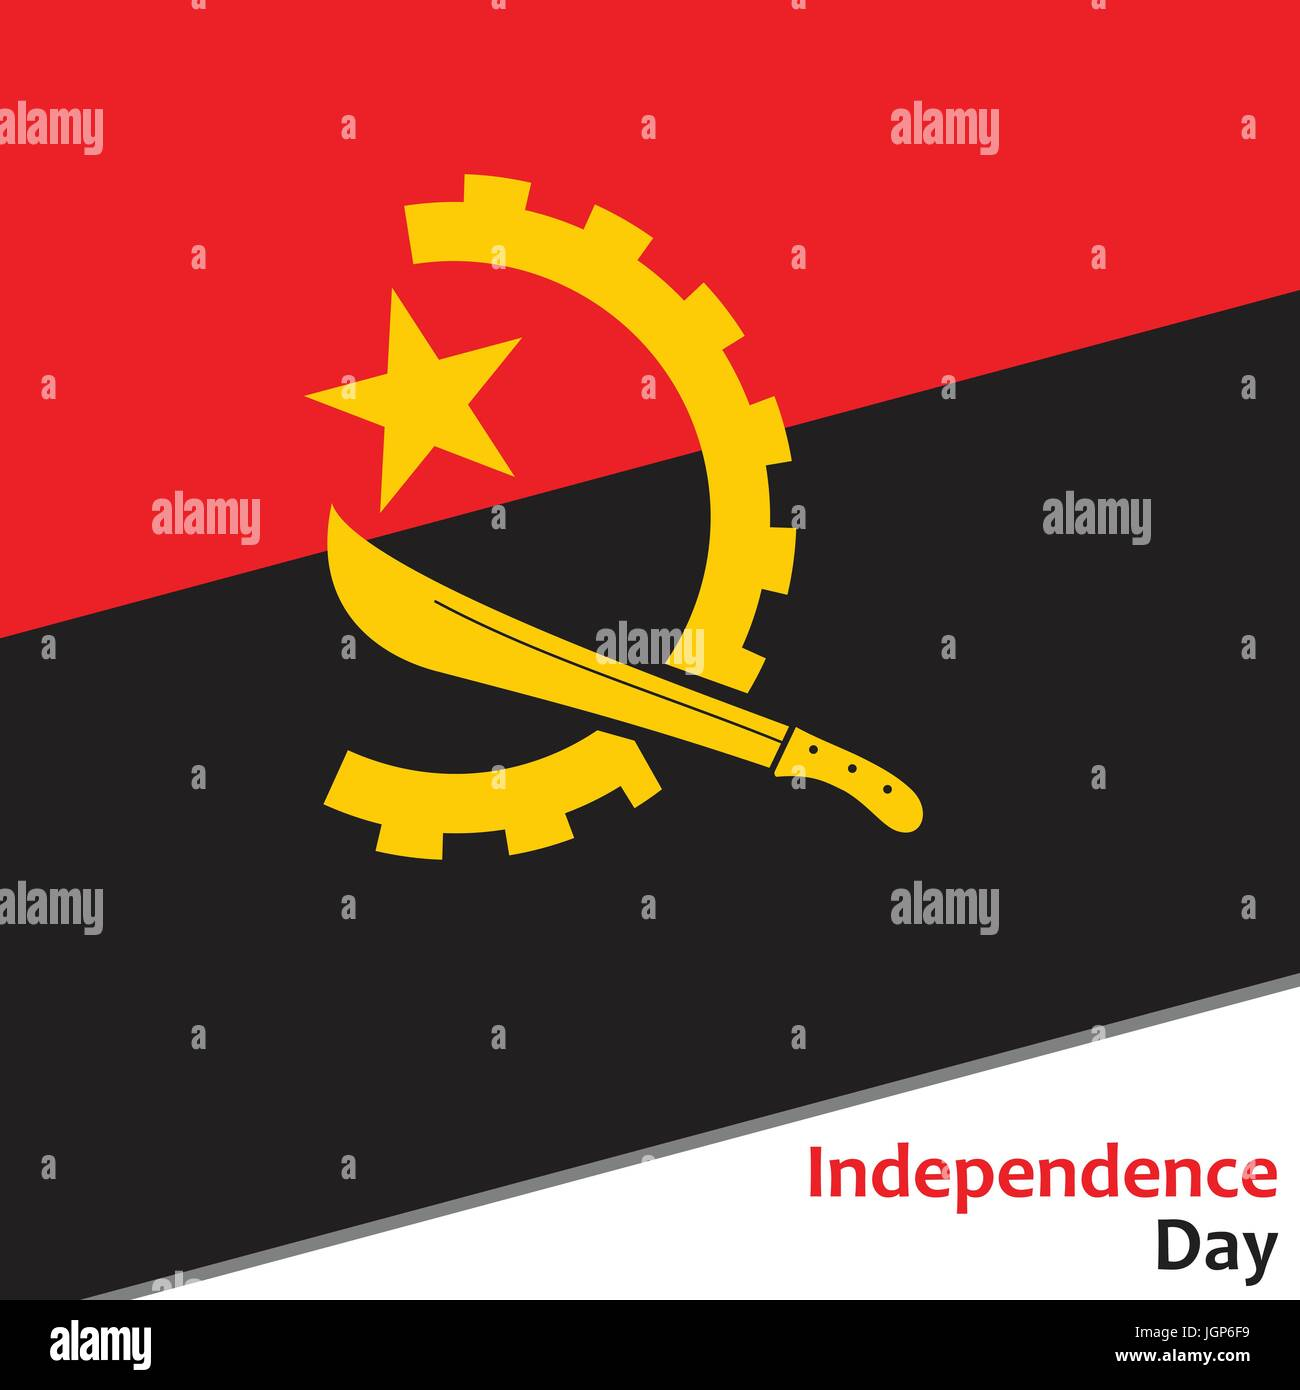 Angola independence day - Stock Vector